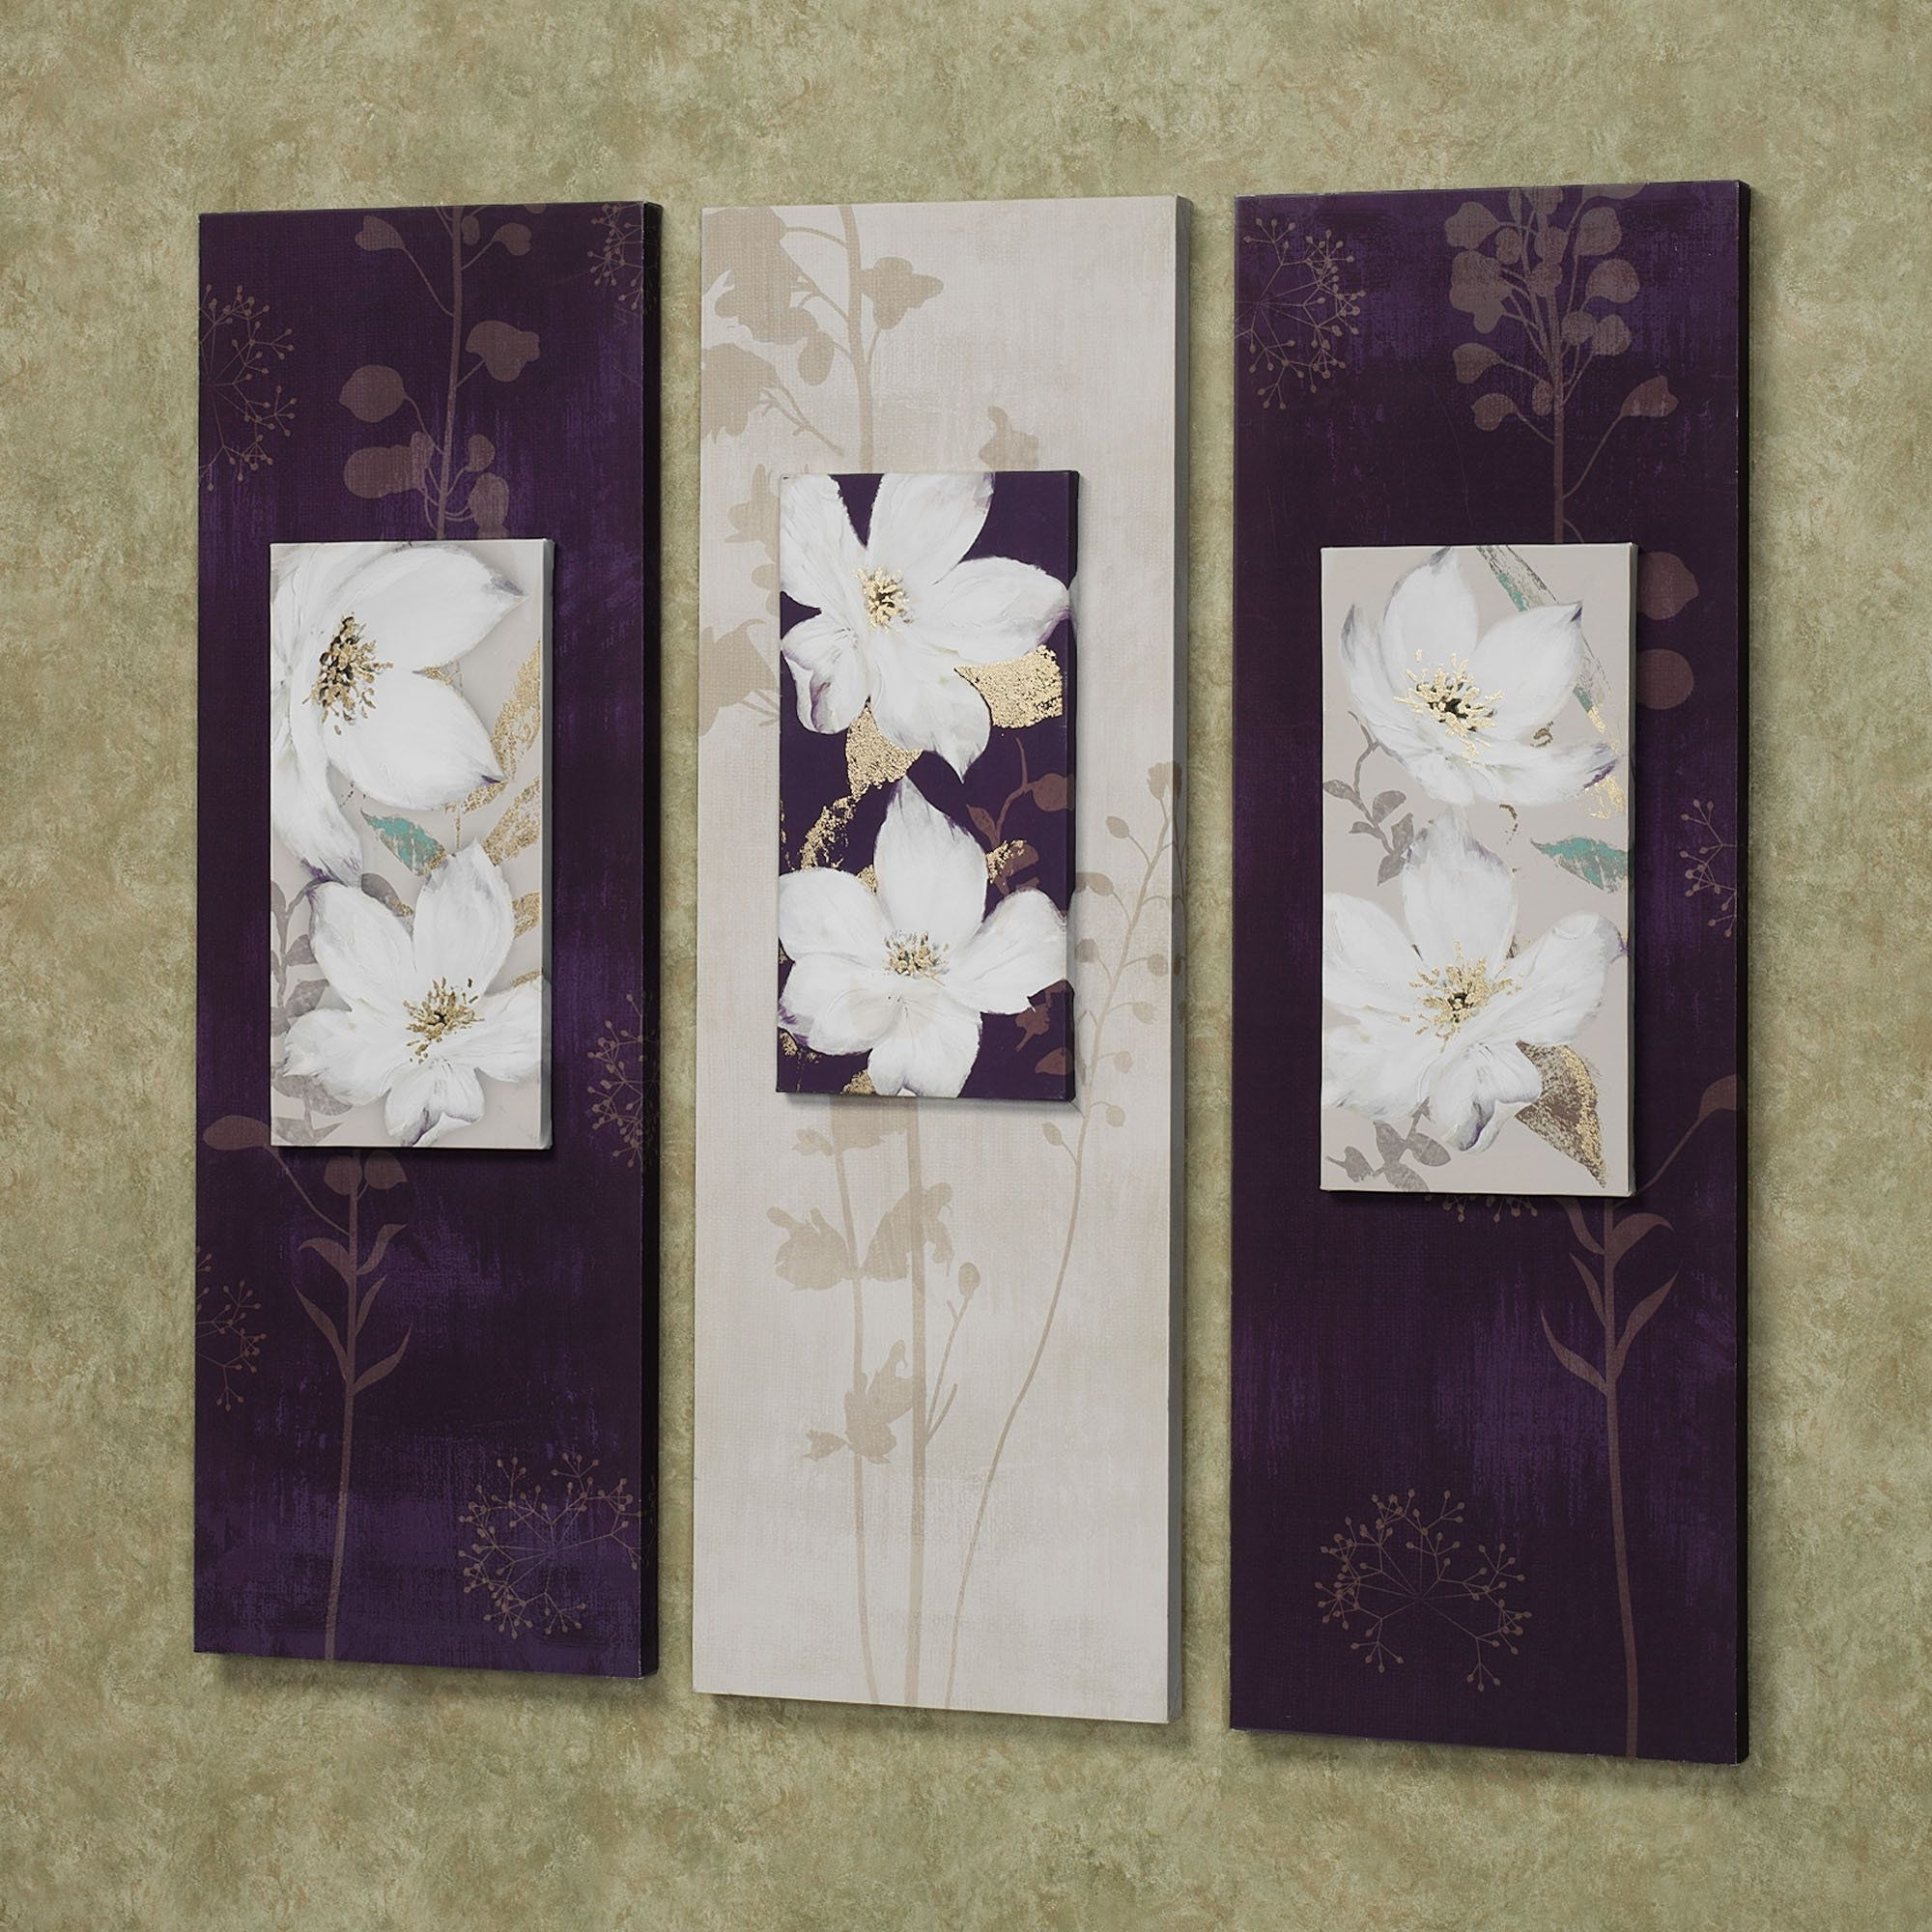 Garden Dance Floral Canvas Wall Art Set | Wall Art Sets, Canvases Within Most Up To Date Lilac Canvas Wall Art (View 8 of 15)